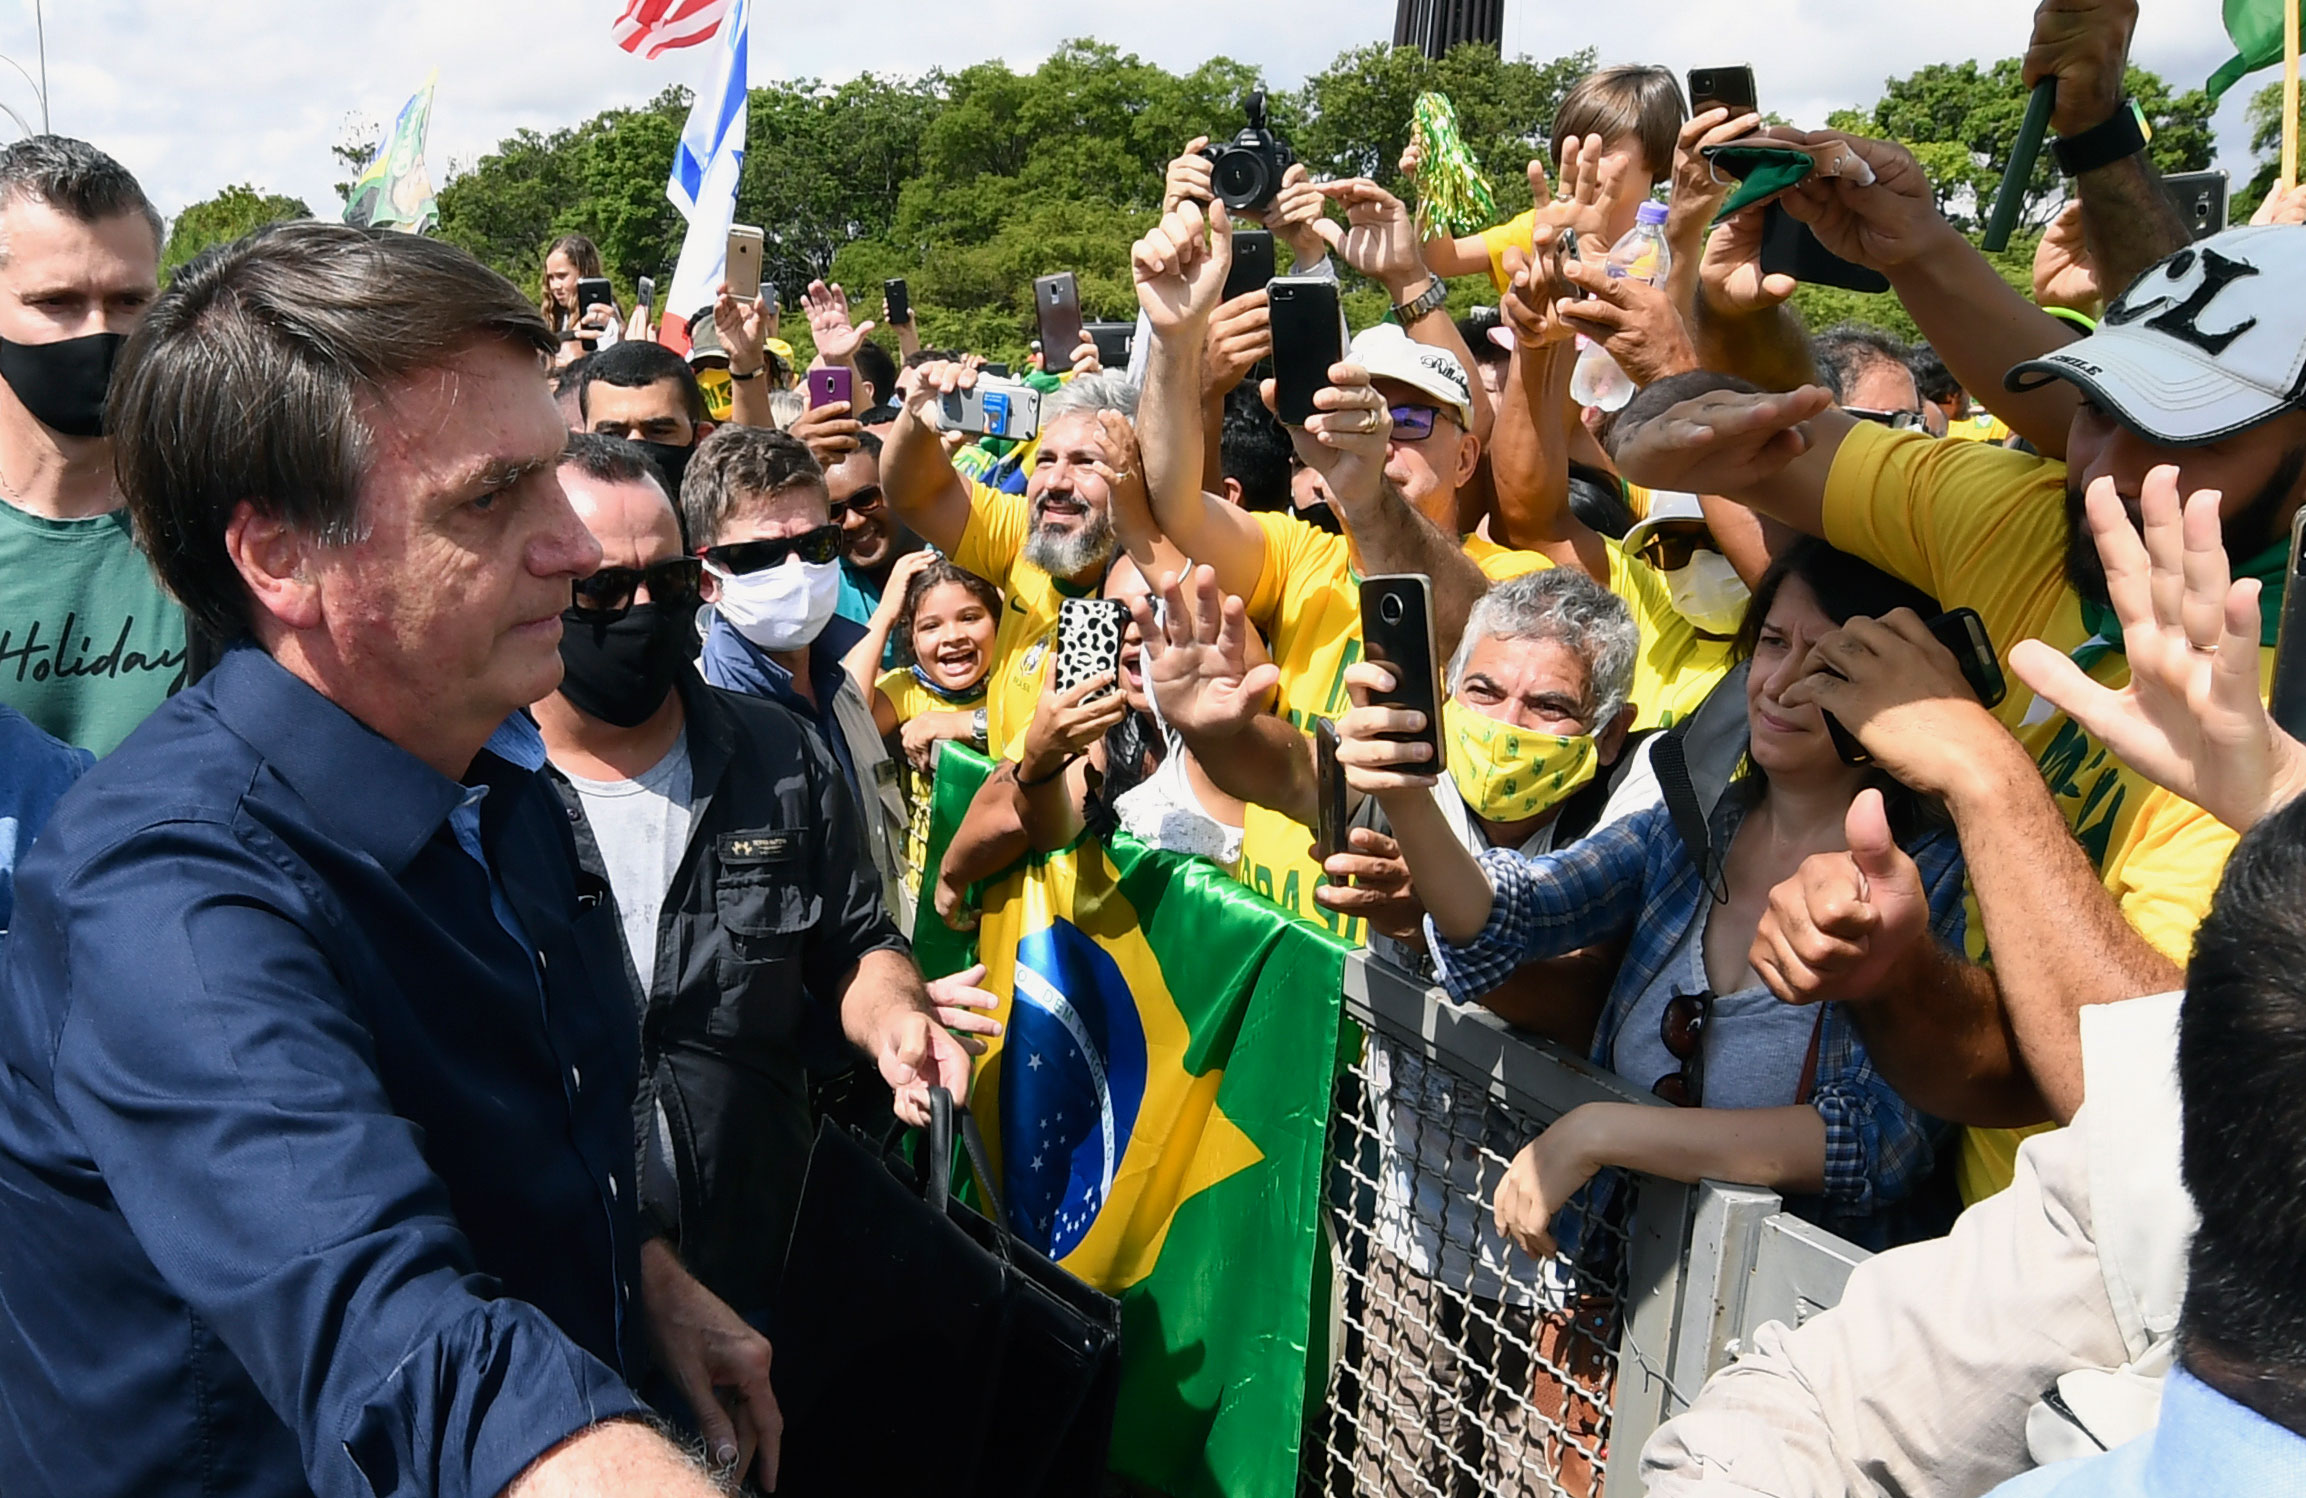 Brazil's President Jair Bolsonaro interacts with the crowd at Planalto Palace in Brasilia, on May 24.